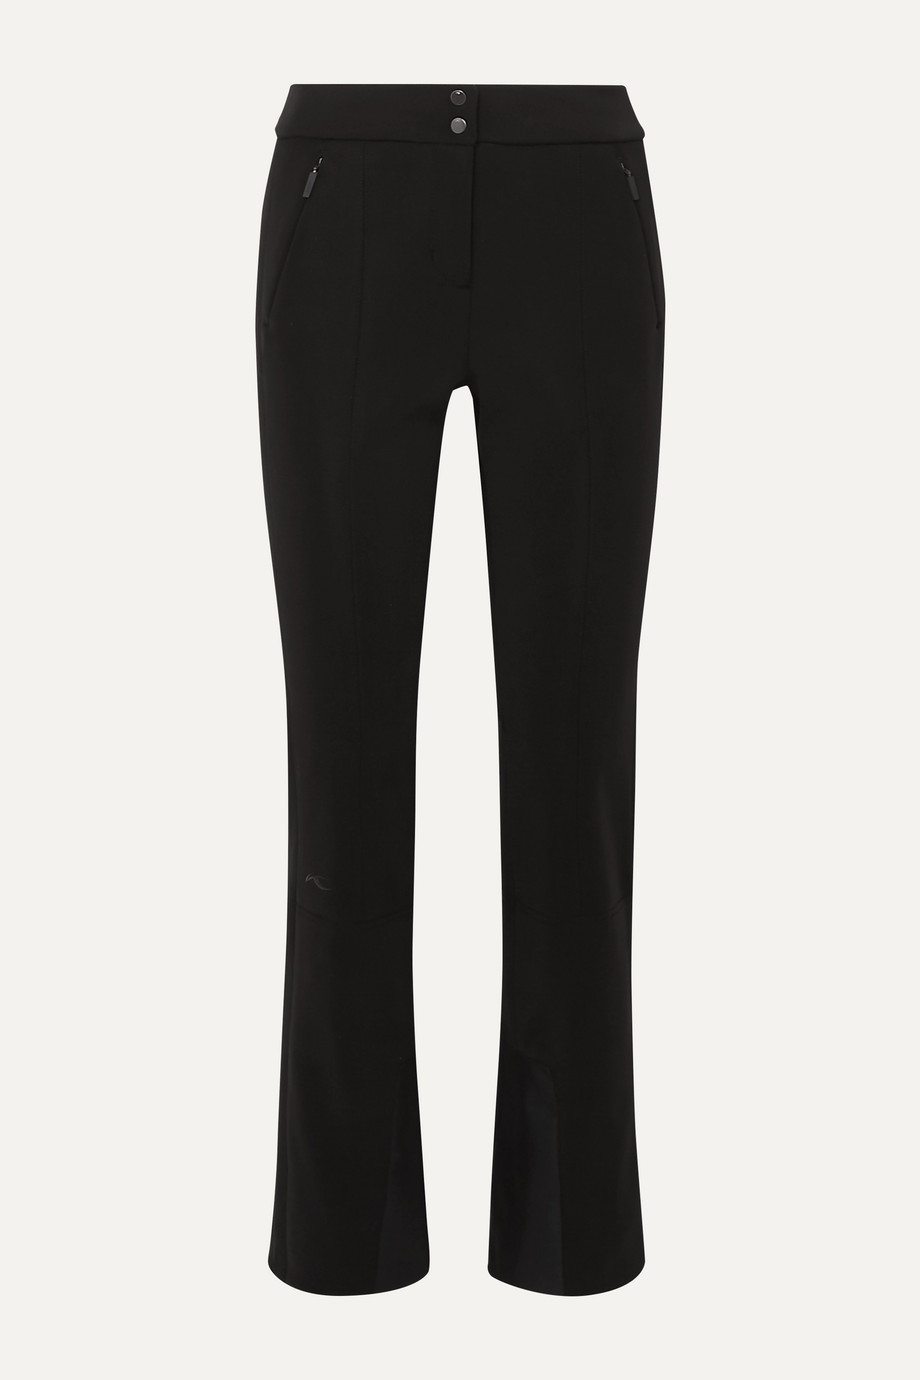 Kjus Sella slim-leg ski pants